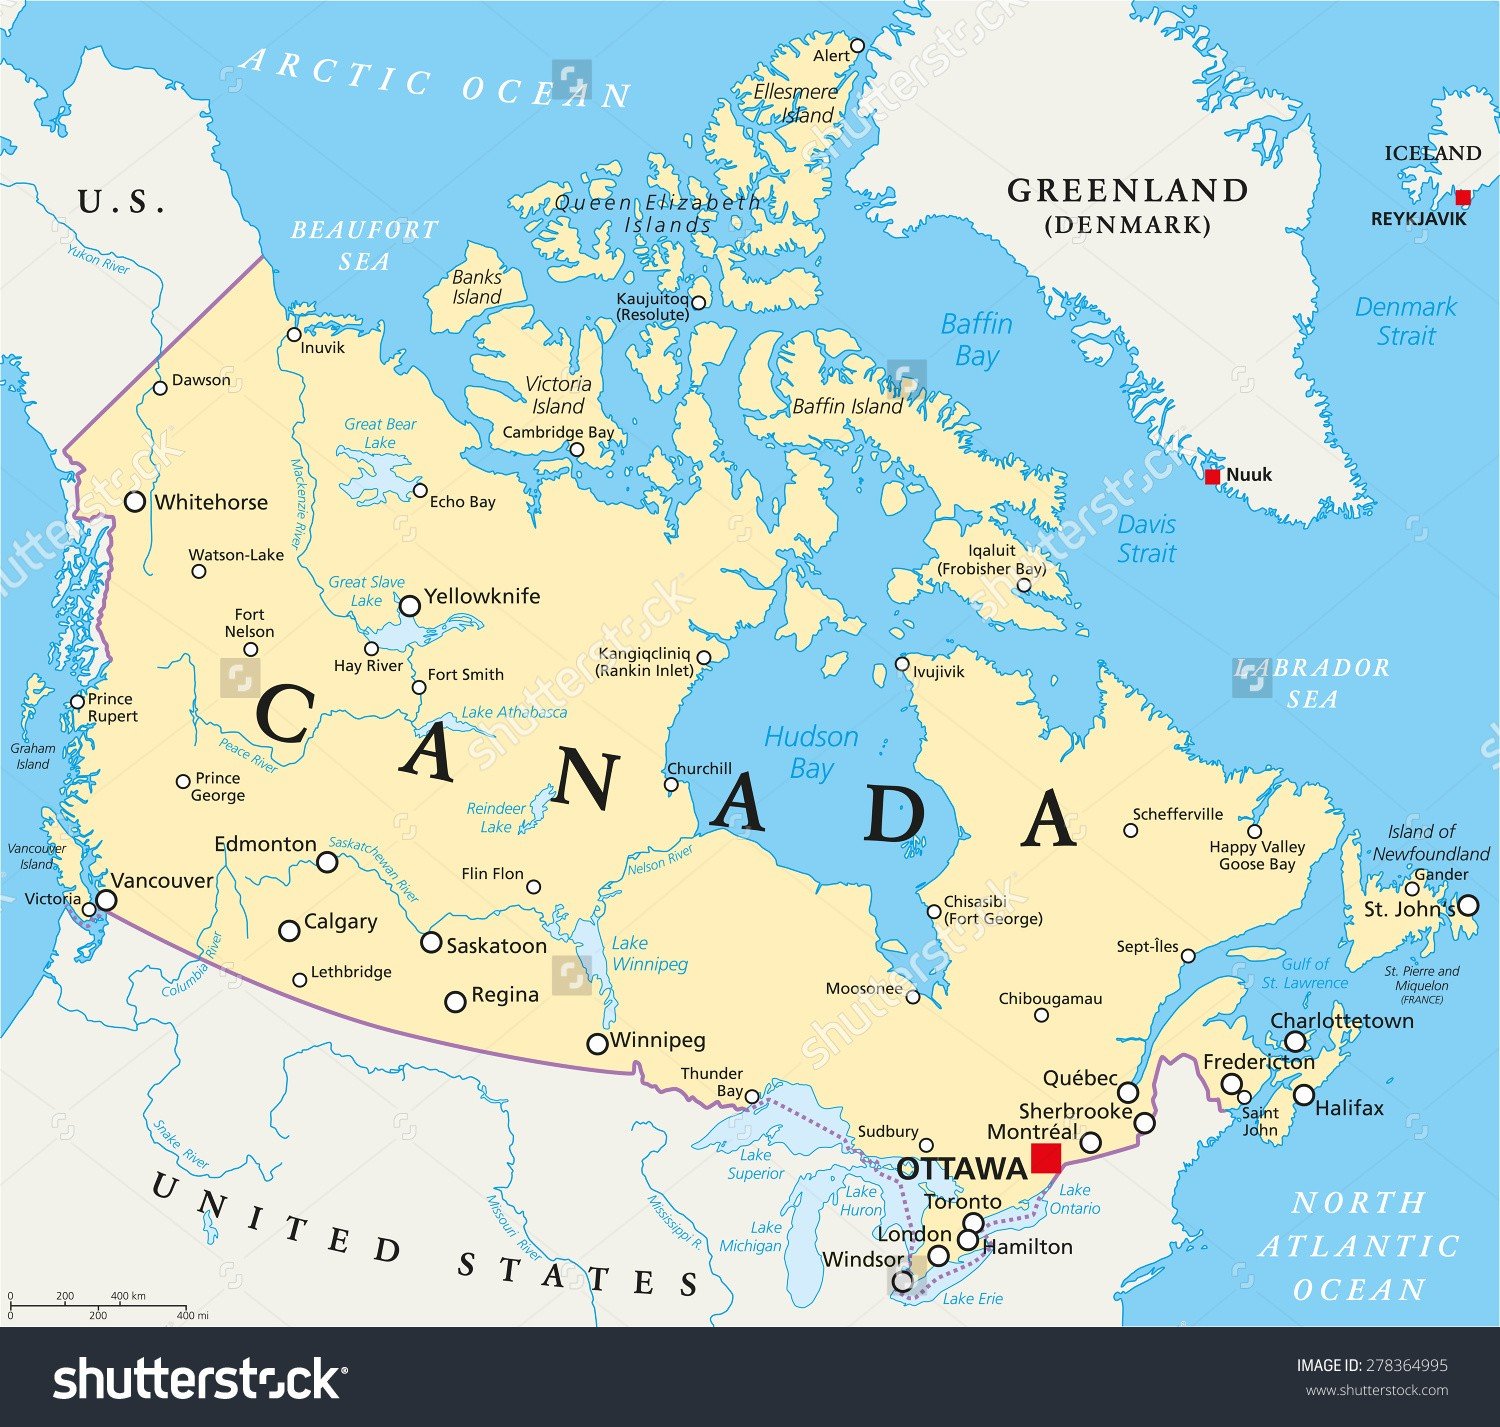 Blank Map of Canada | Canada Map with Cities